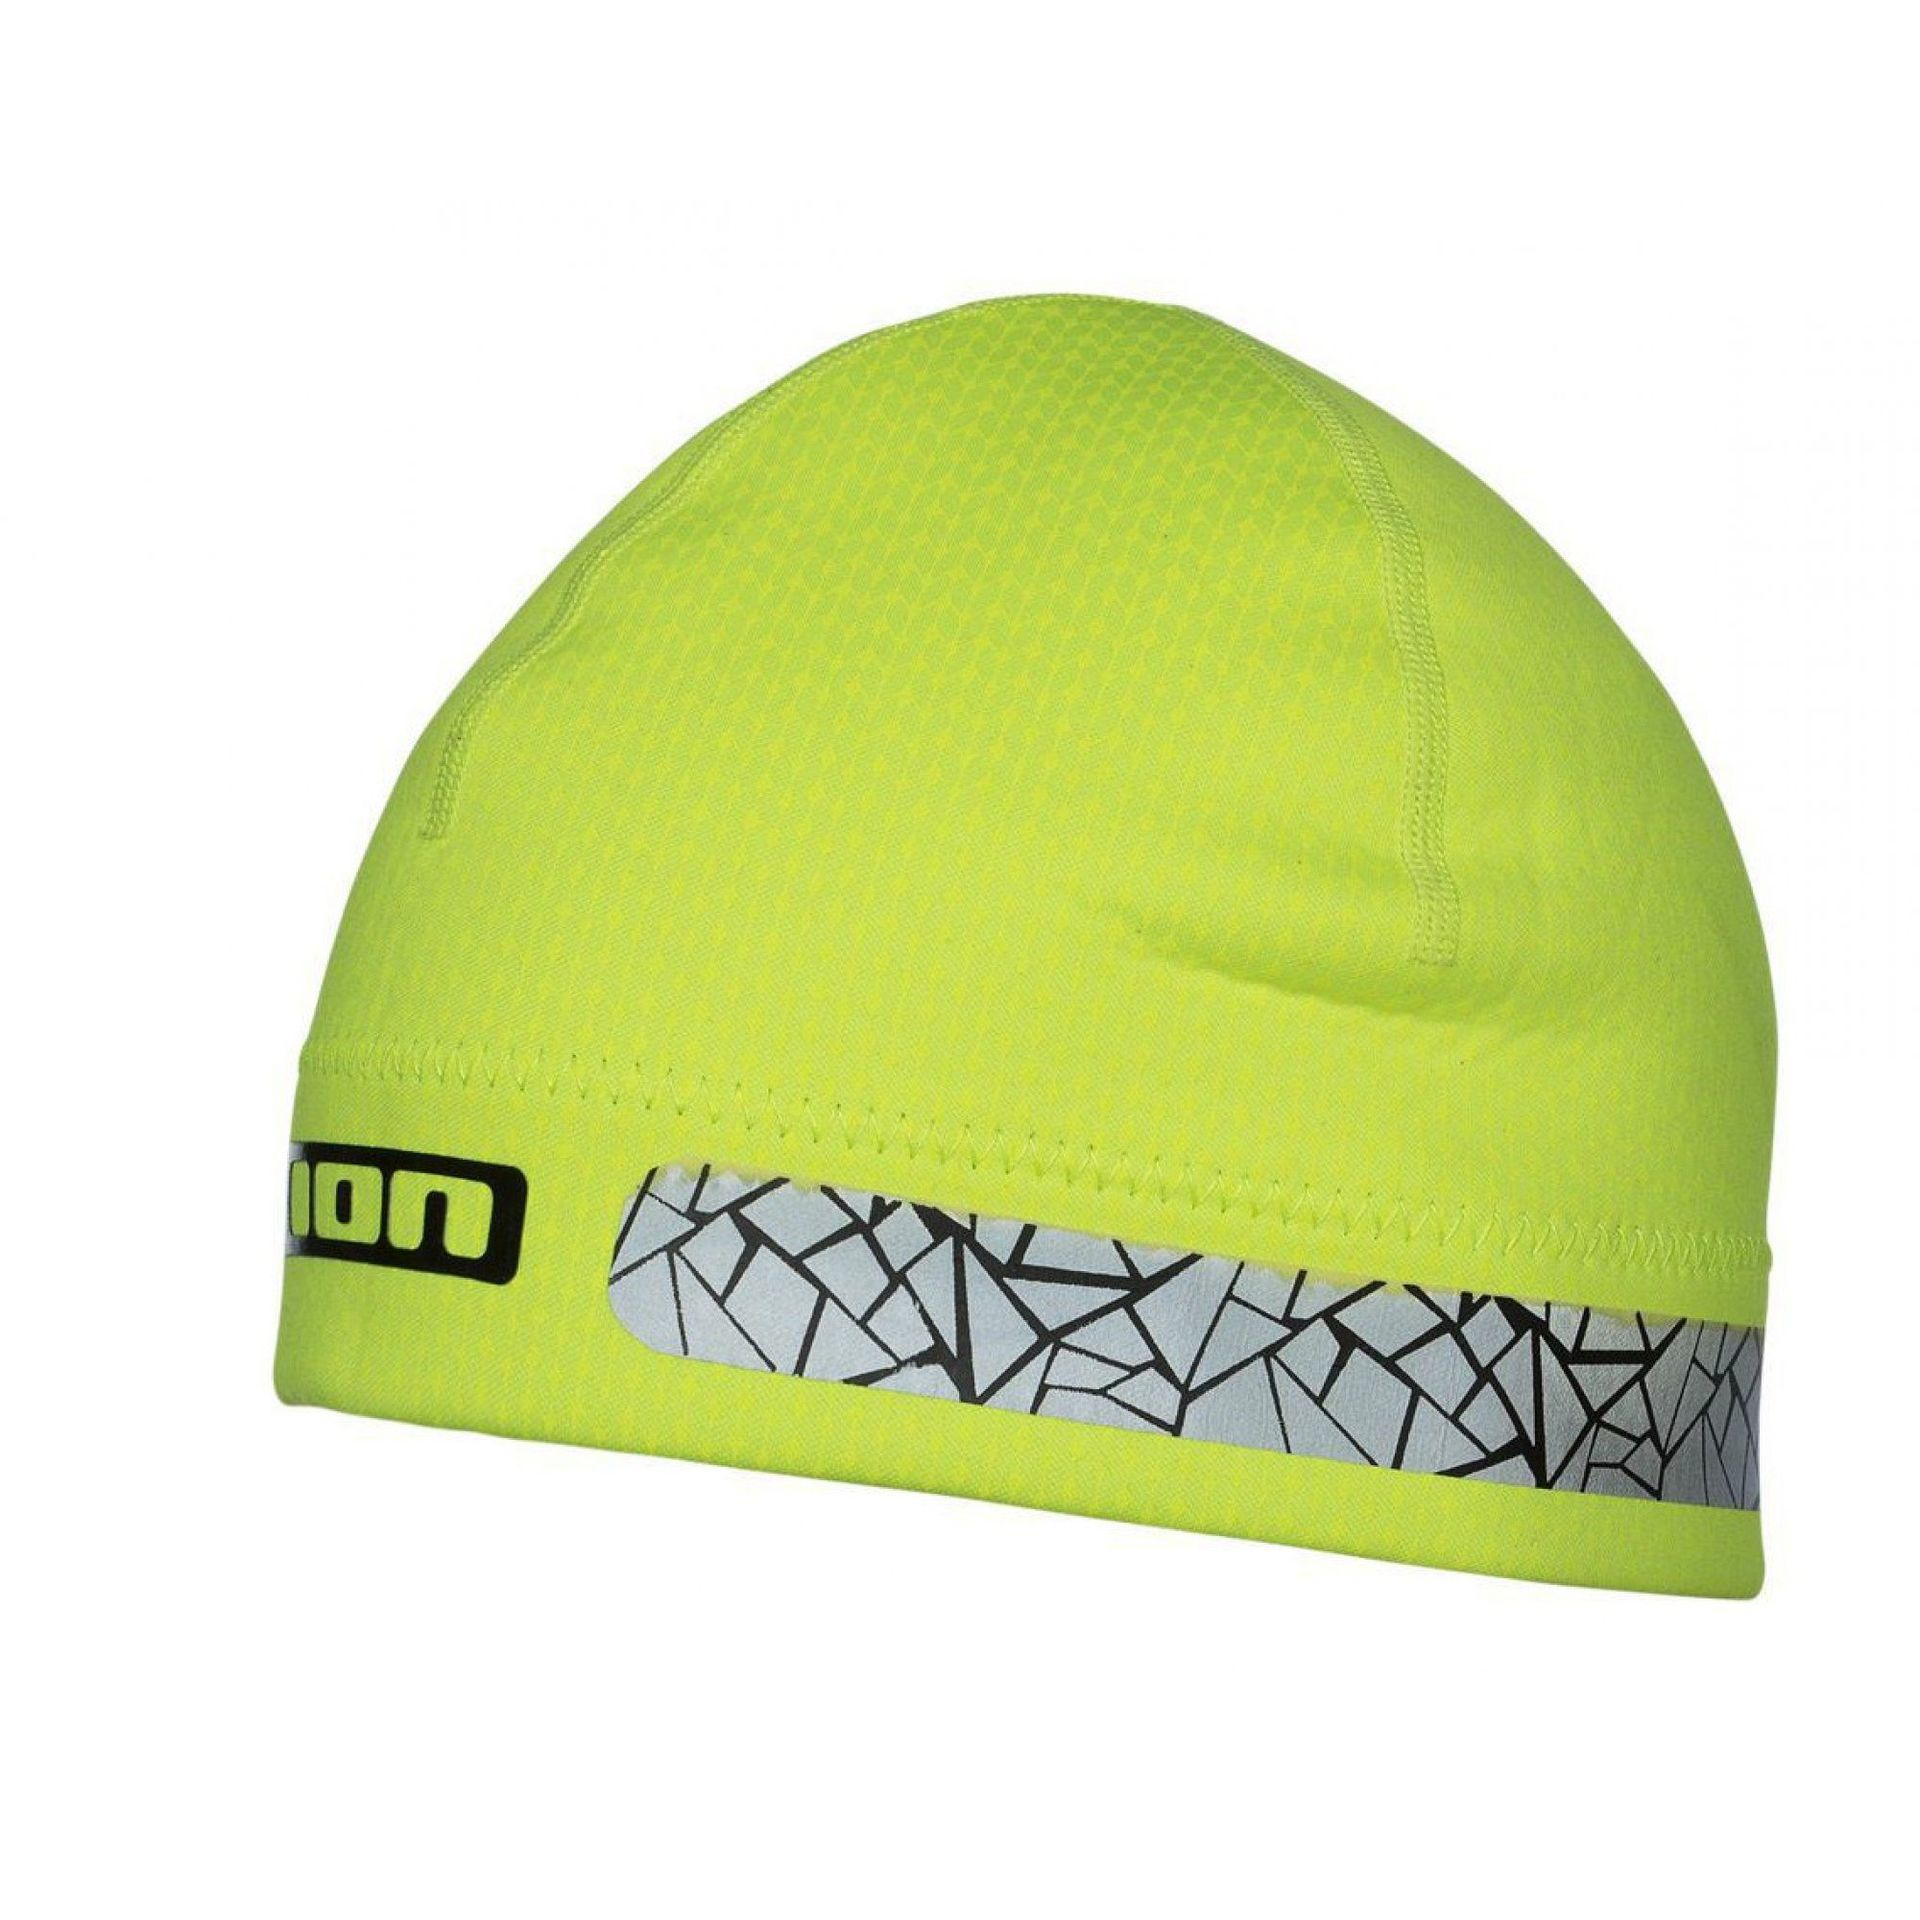 CZAPKA NEOPRENOWA ION SAFETY BEANIE LIME